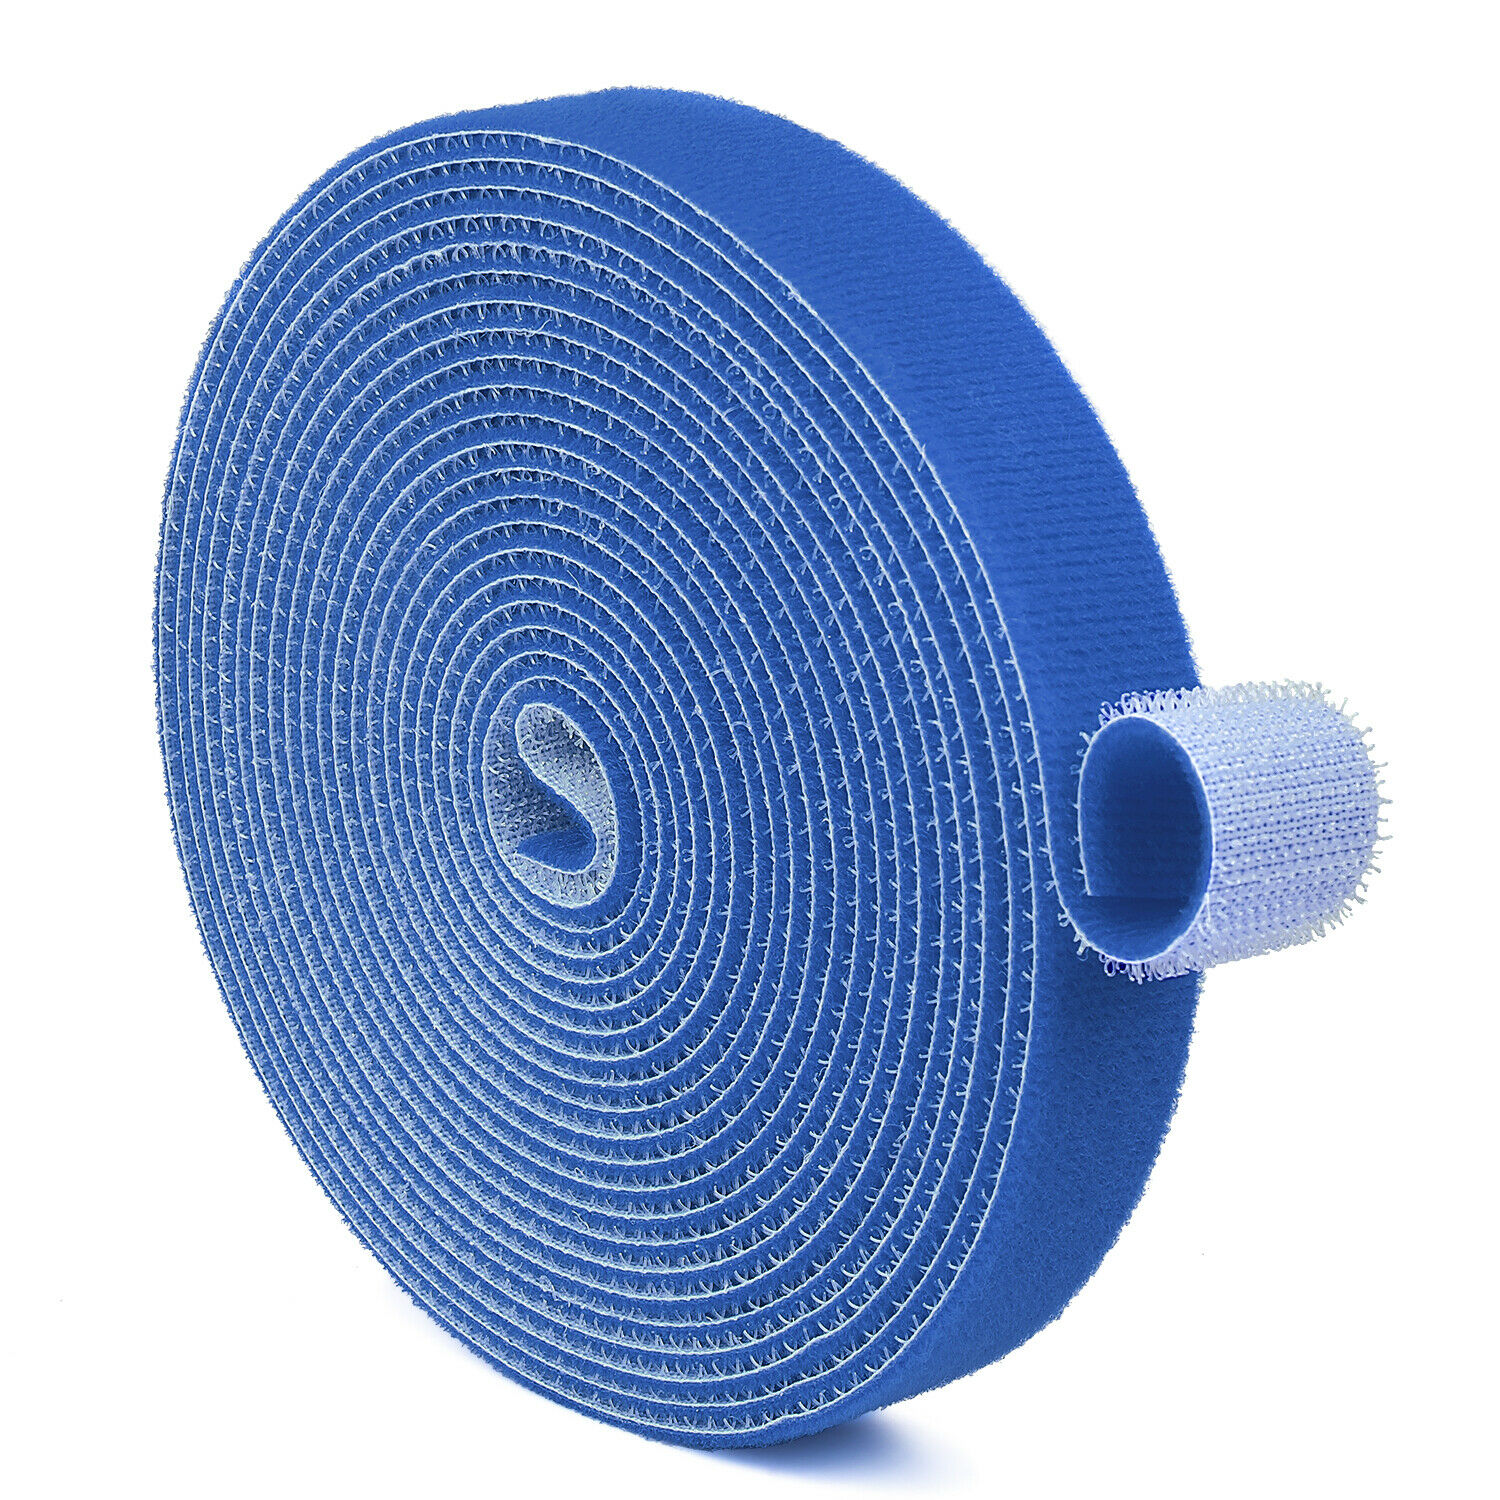 Hook And Loop Tape Strap Cable Ties Fastener Blue 15FT Self Adhesive Roll Wrap